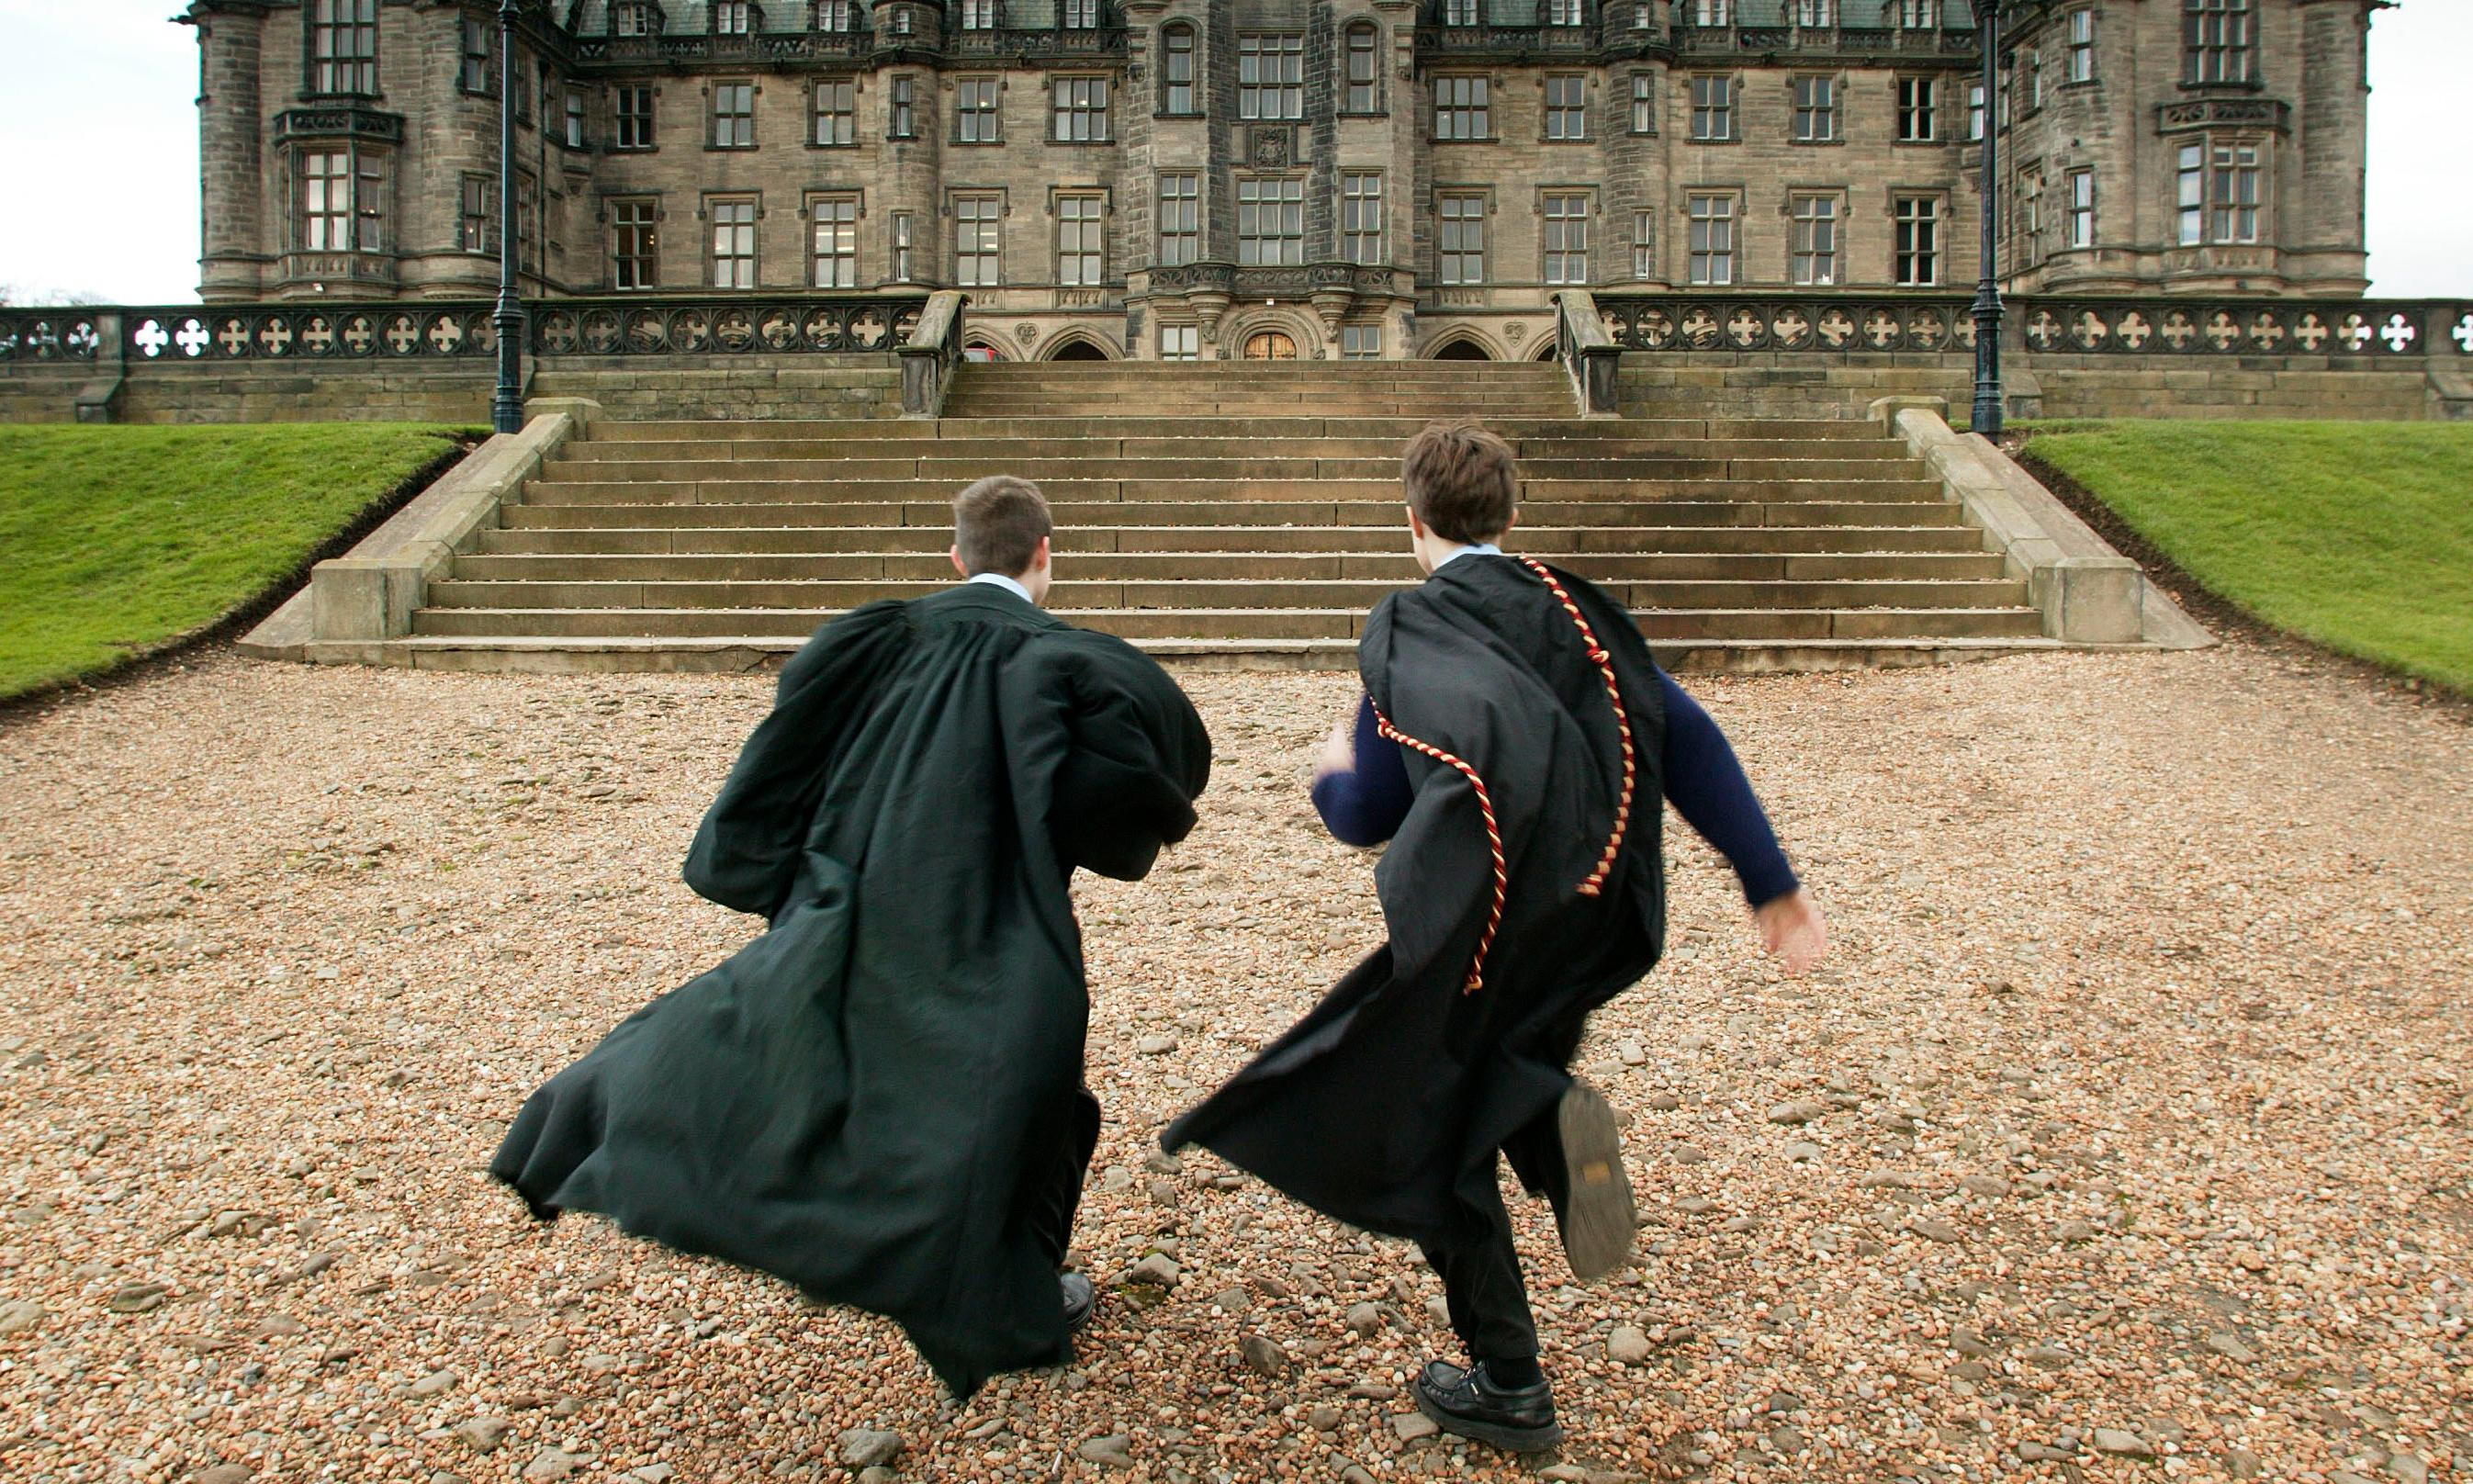 Britain is still ruled by a privately educated elite. Let's end this culture of deference